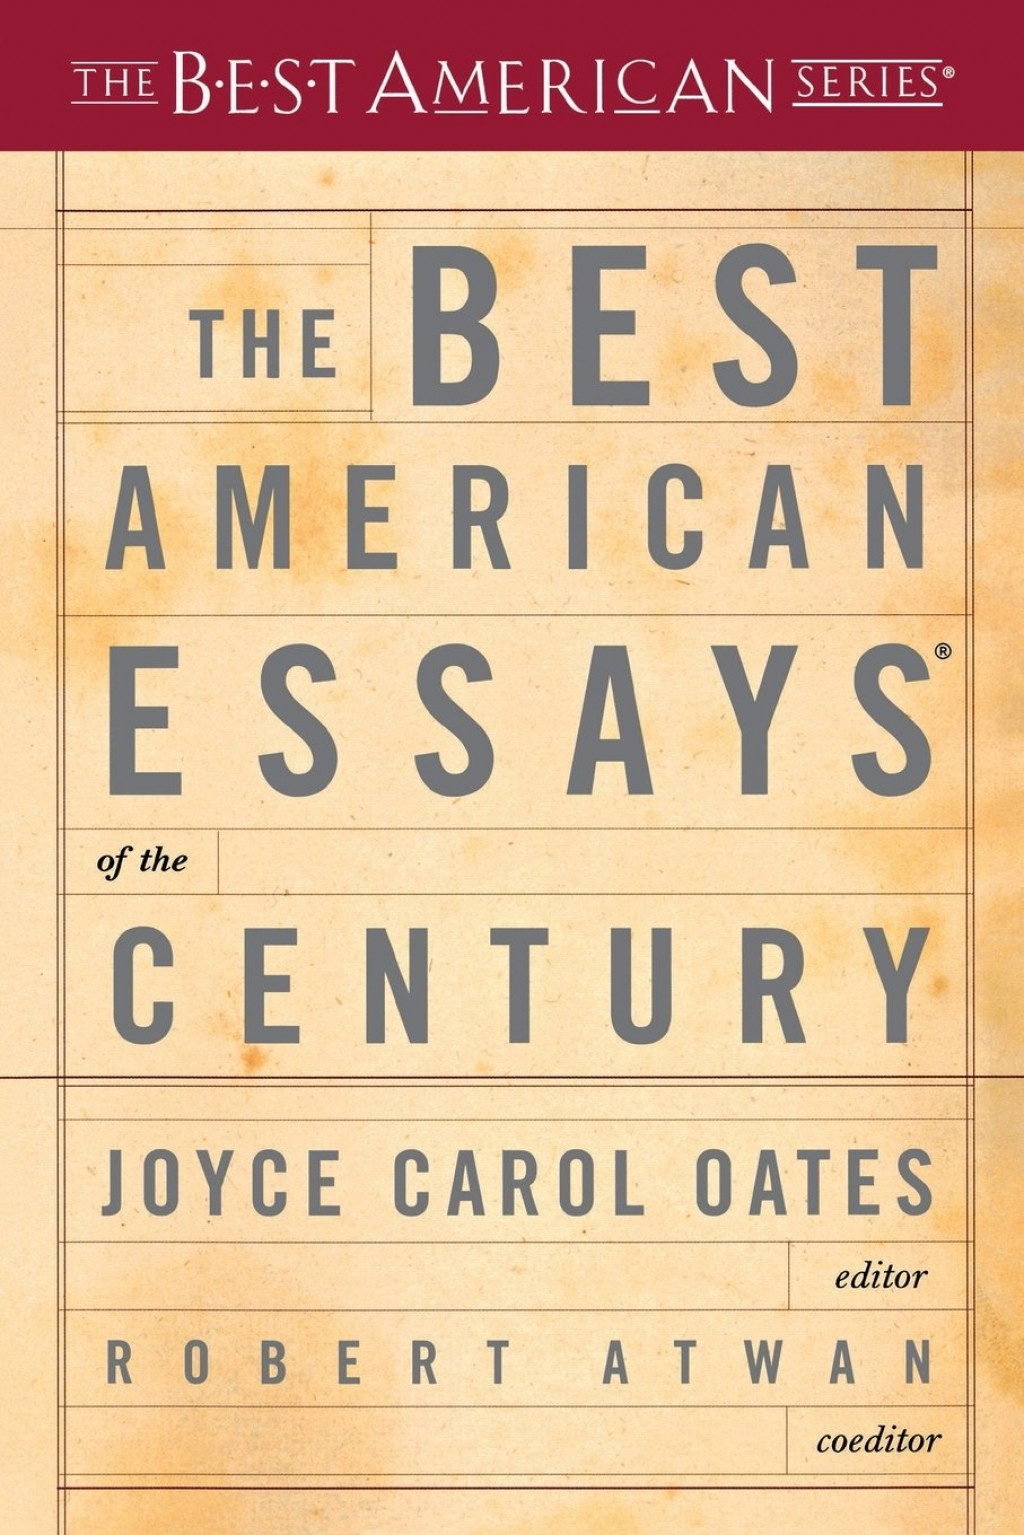 002 The Best American Essays Essay Example Wonderful Of Century Table Contents 2013 Pdf Download Large